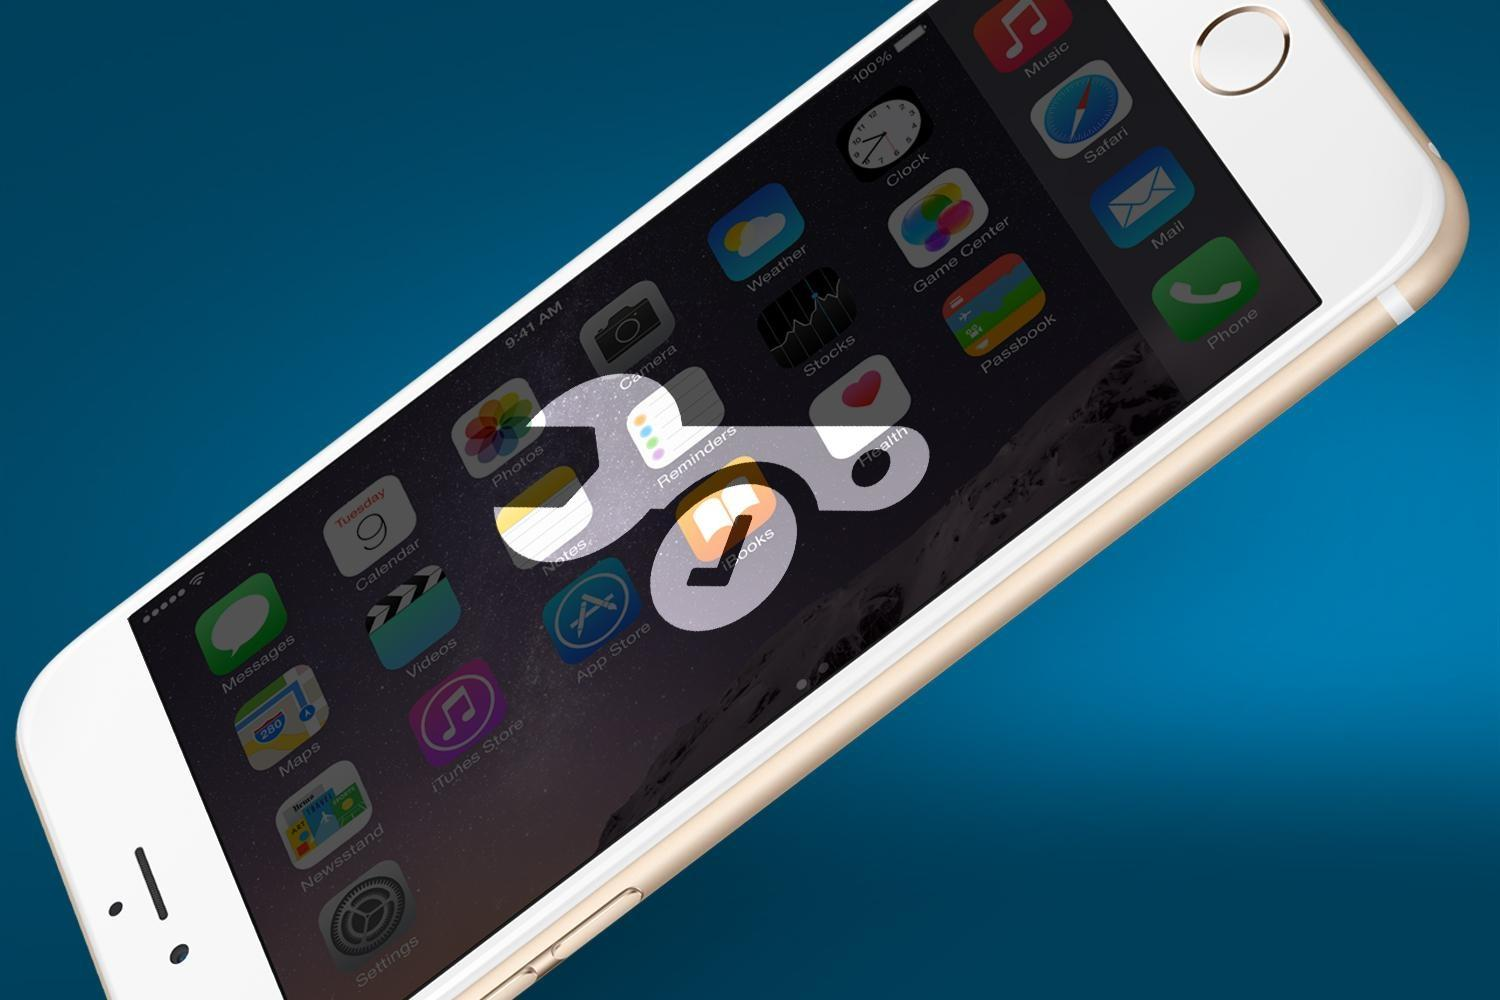 25 major problems with the iPhone 6, and what to do about them